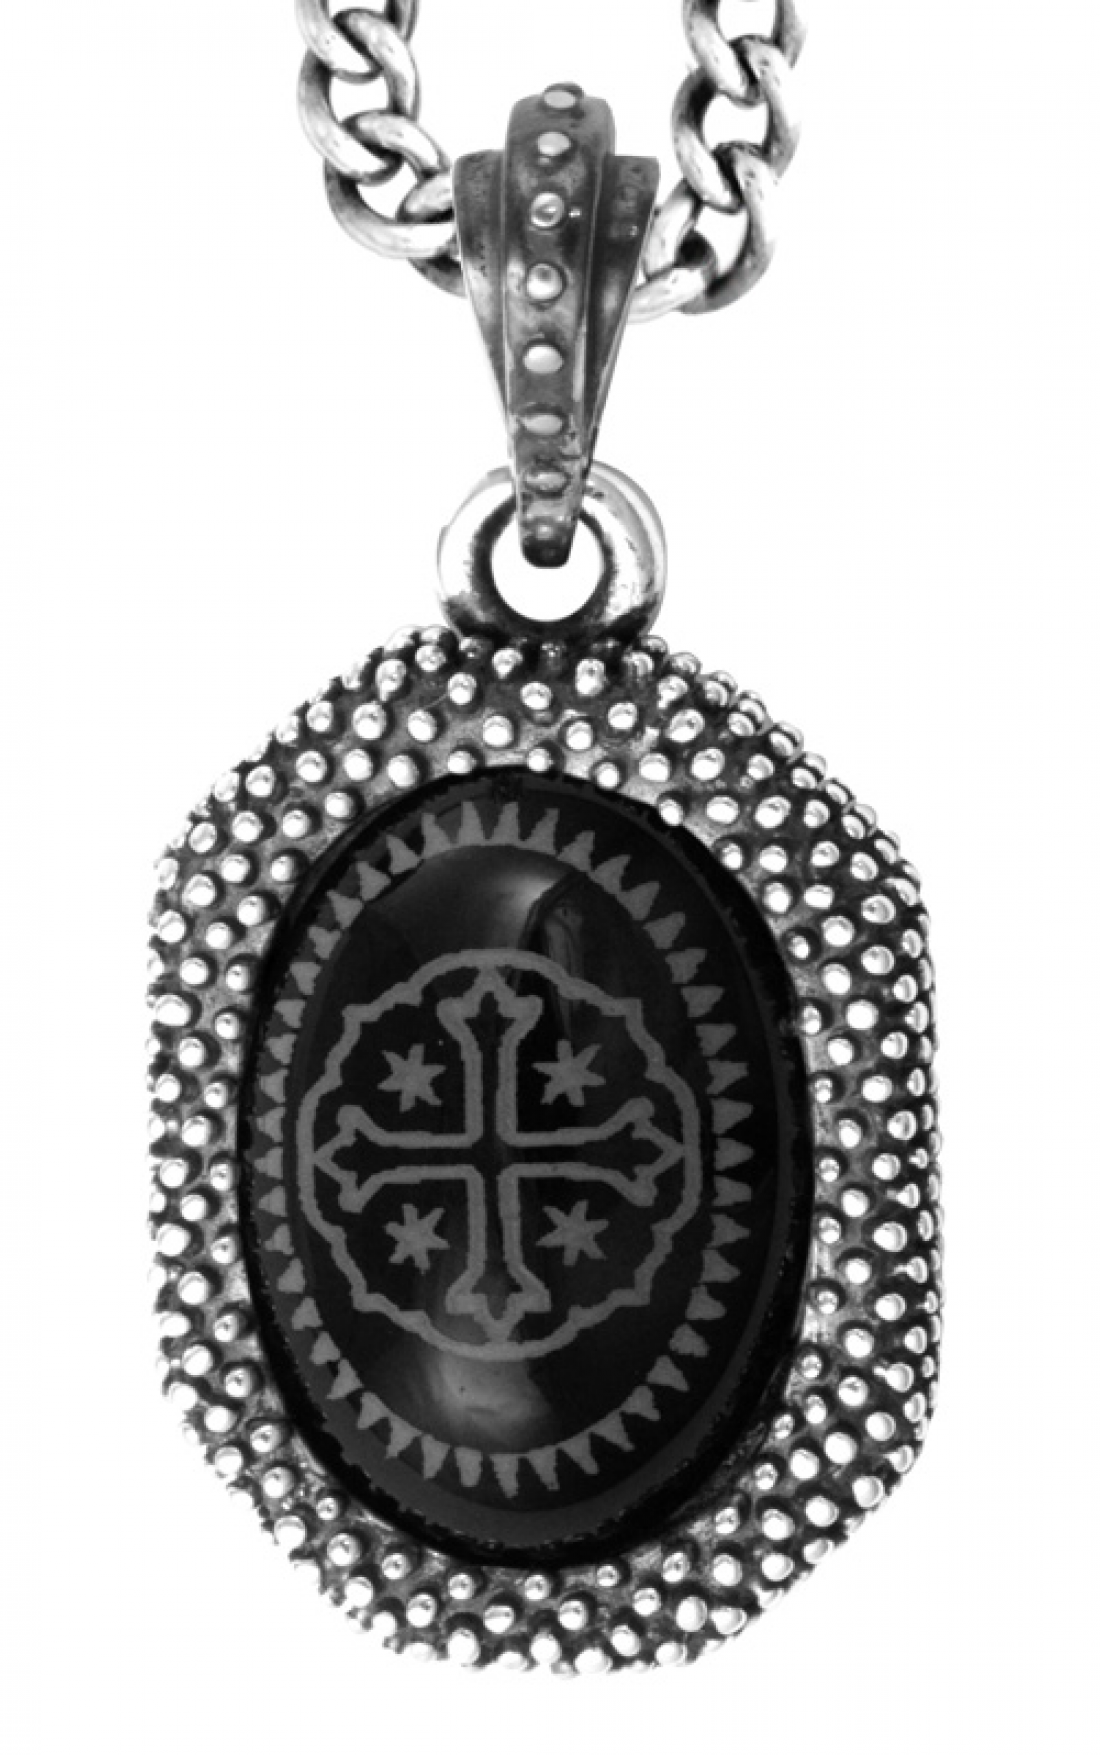 King Baby - Onyx Shipwreck Cross in Industrial Texture Frame Pendant (K10-5318A)